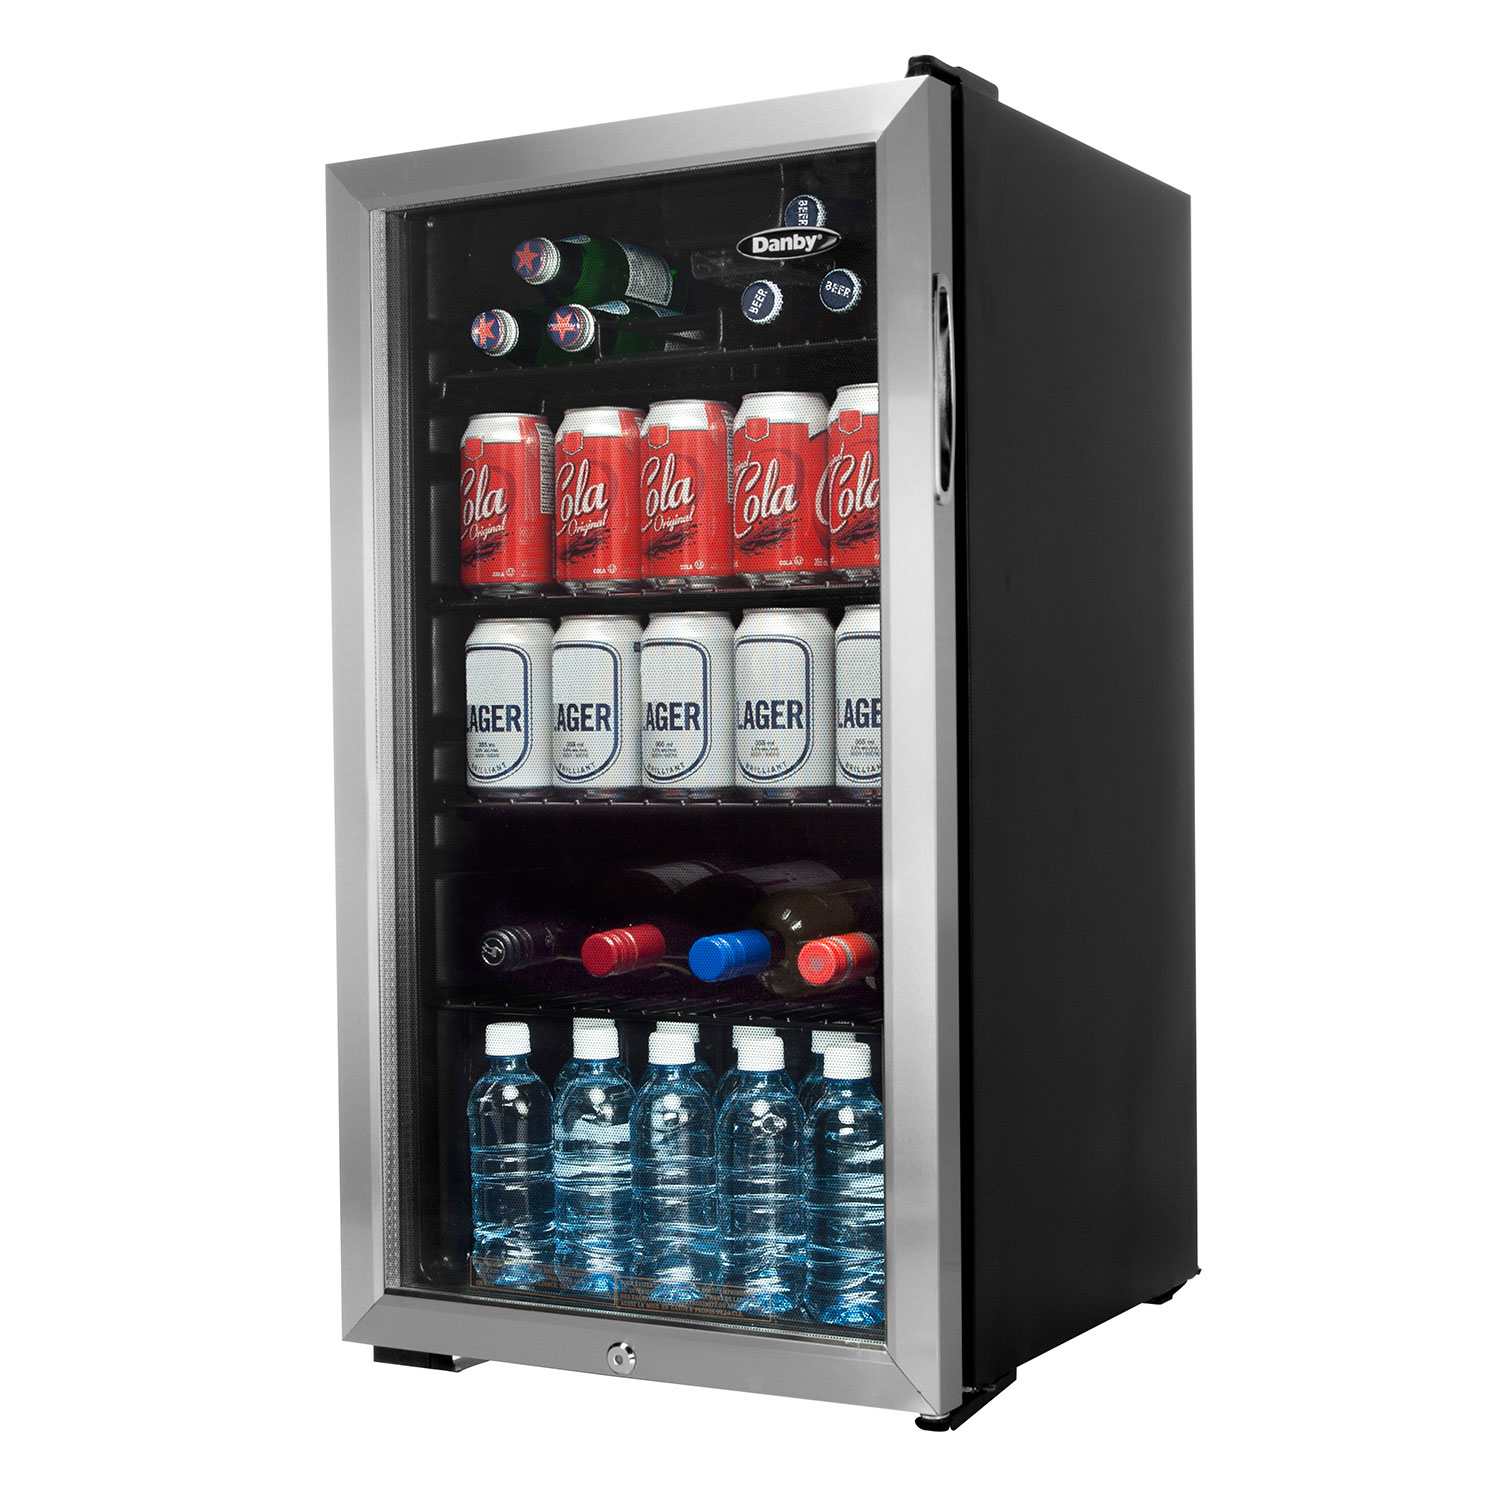 Danby 33 Cuft Bar Fridge Dbc120bls Black Mini Fridges